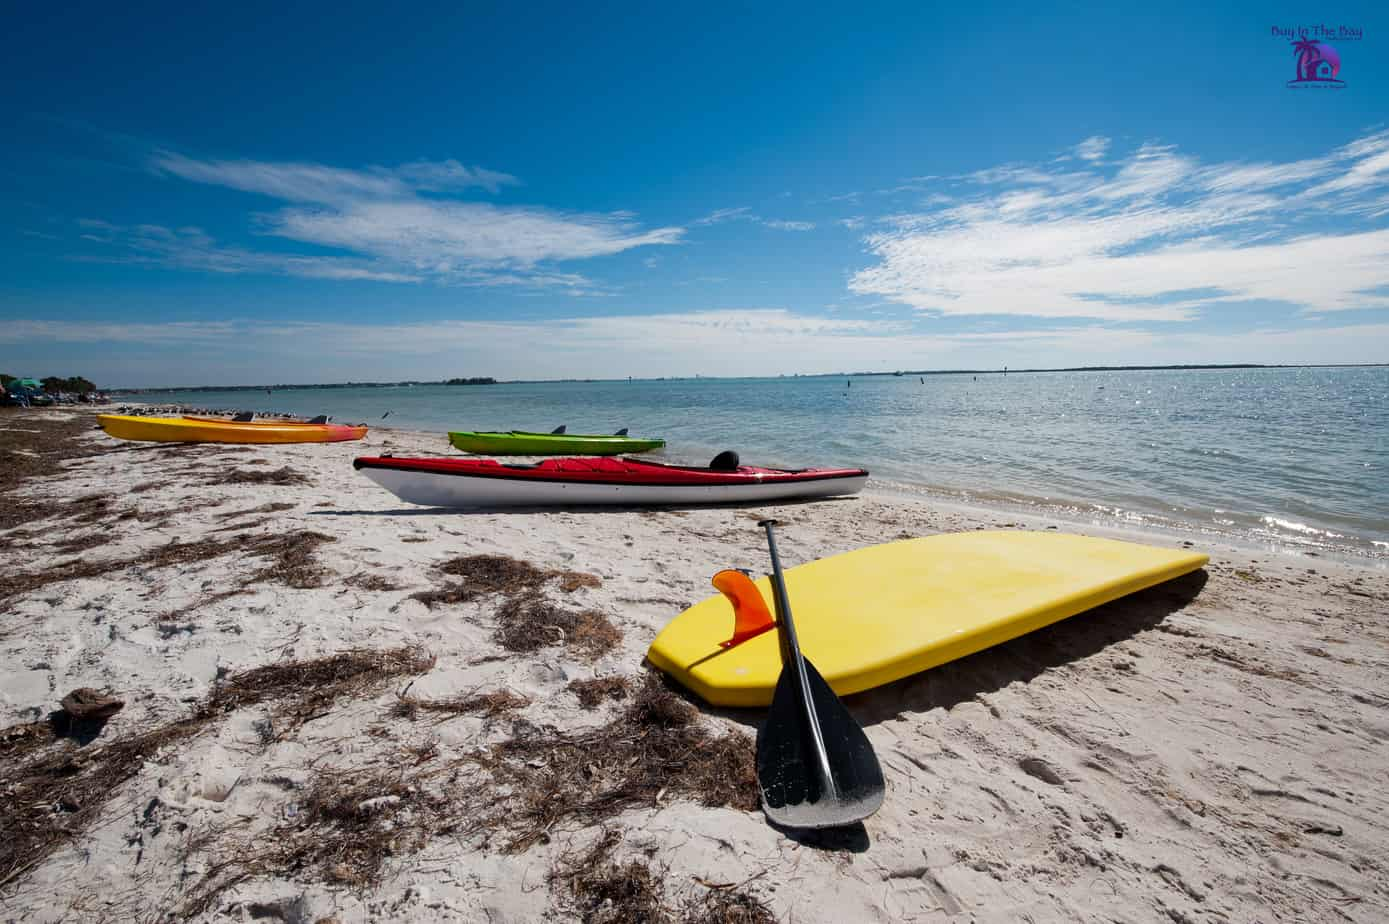 Picture of Honeymoon Island State Park in Palm Harbor Florida with the beach, water, and three kayaks